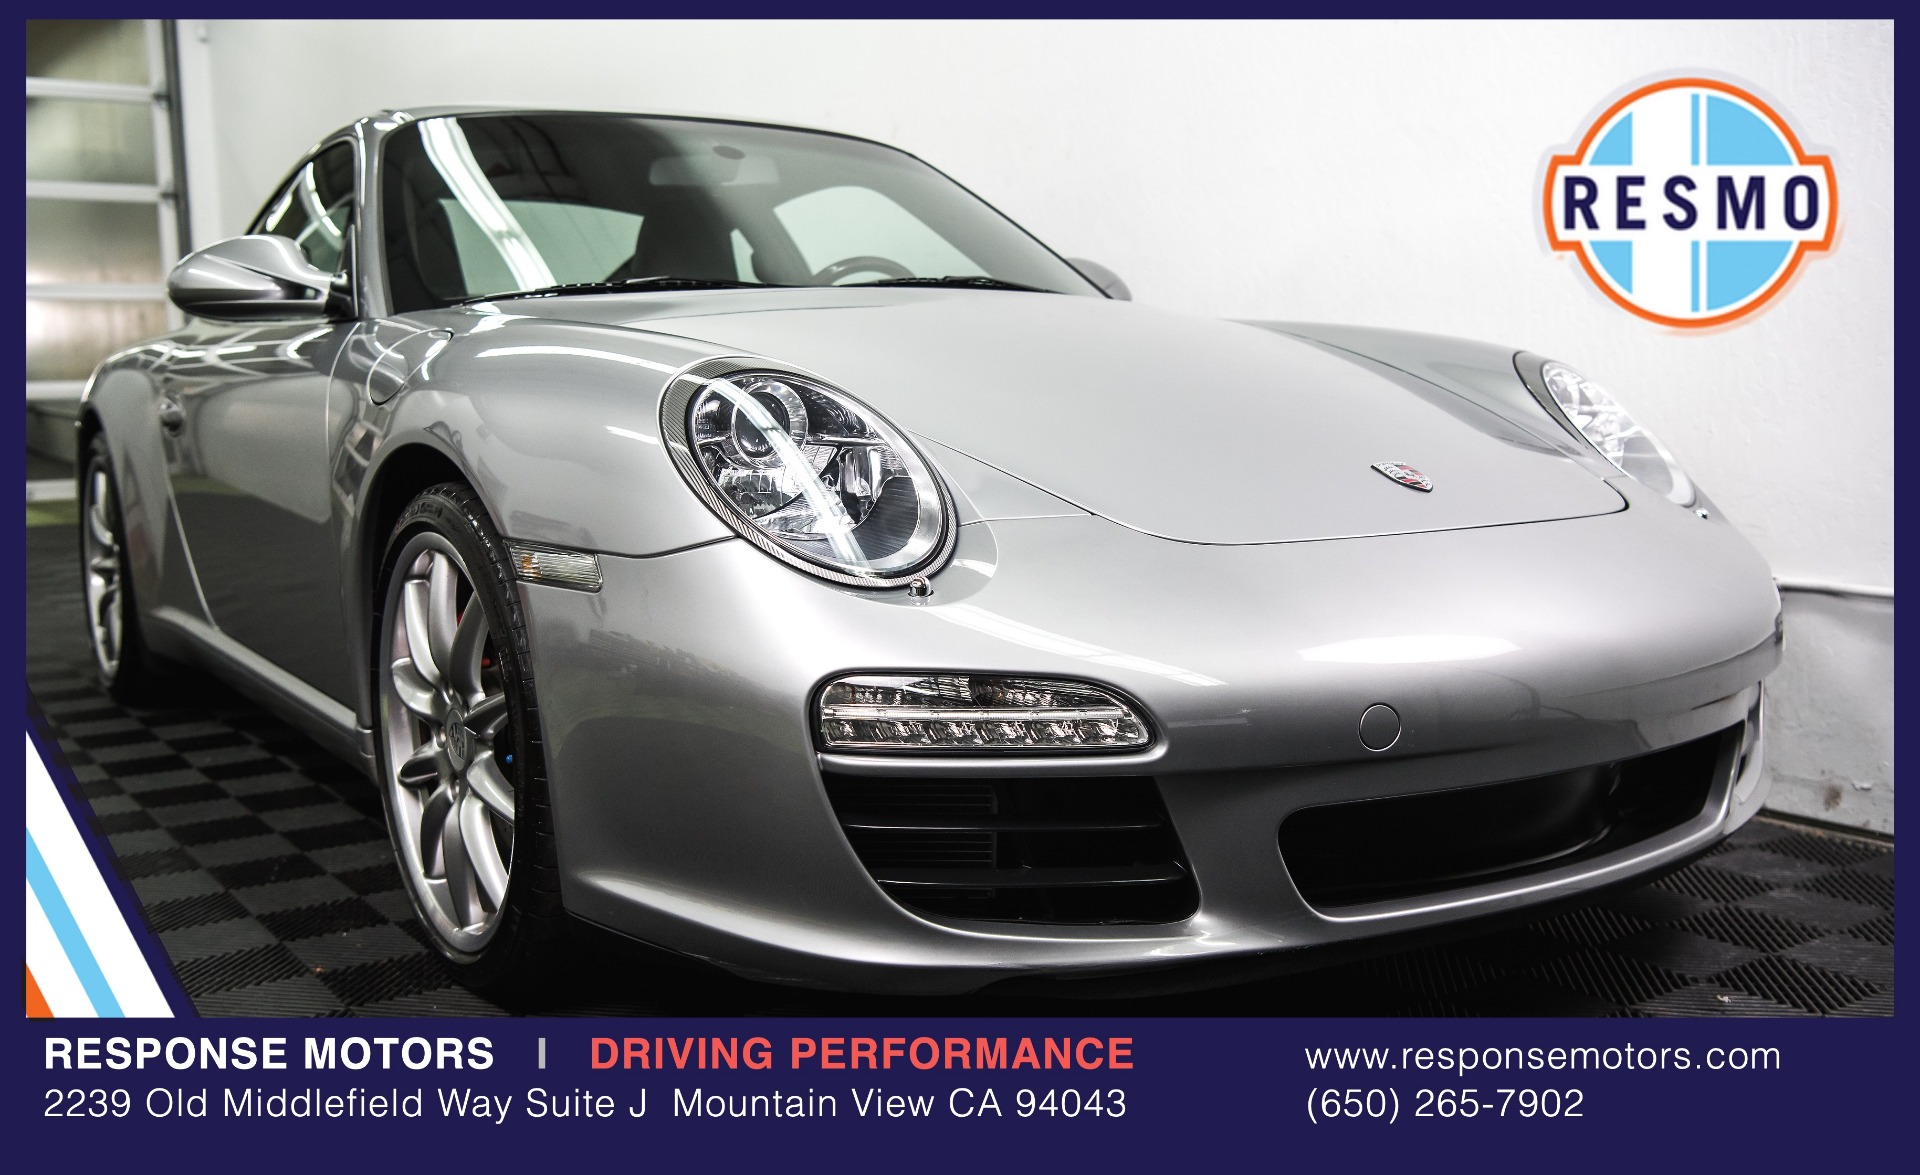 Used 2010 Porsche 911 Carrera S Used 2010 Porsche 911 Carrera S for sale Sold at Response Motors in Mountain View CA 2